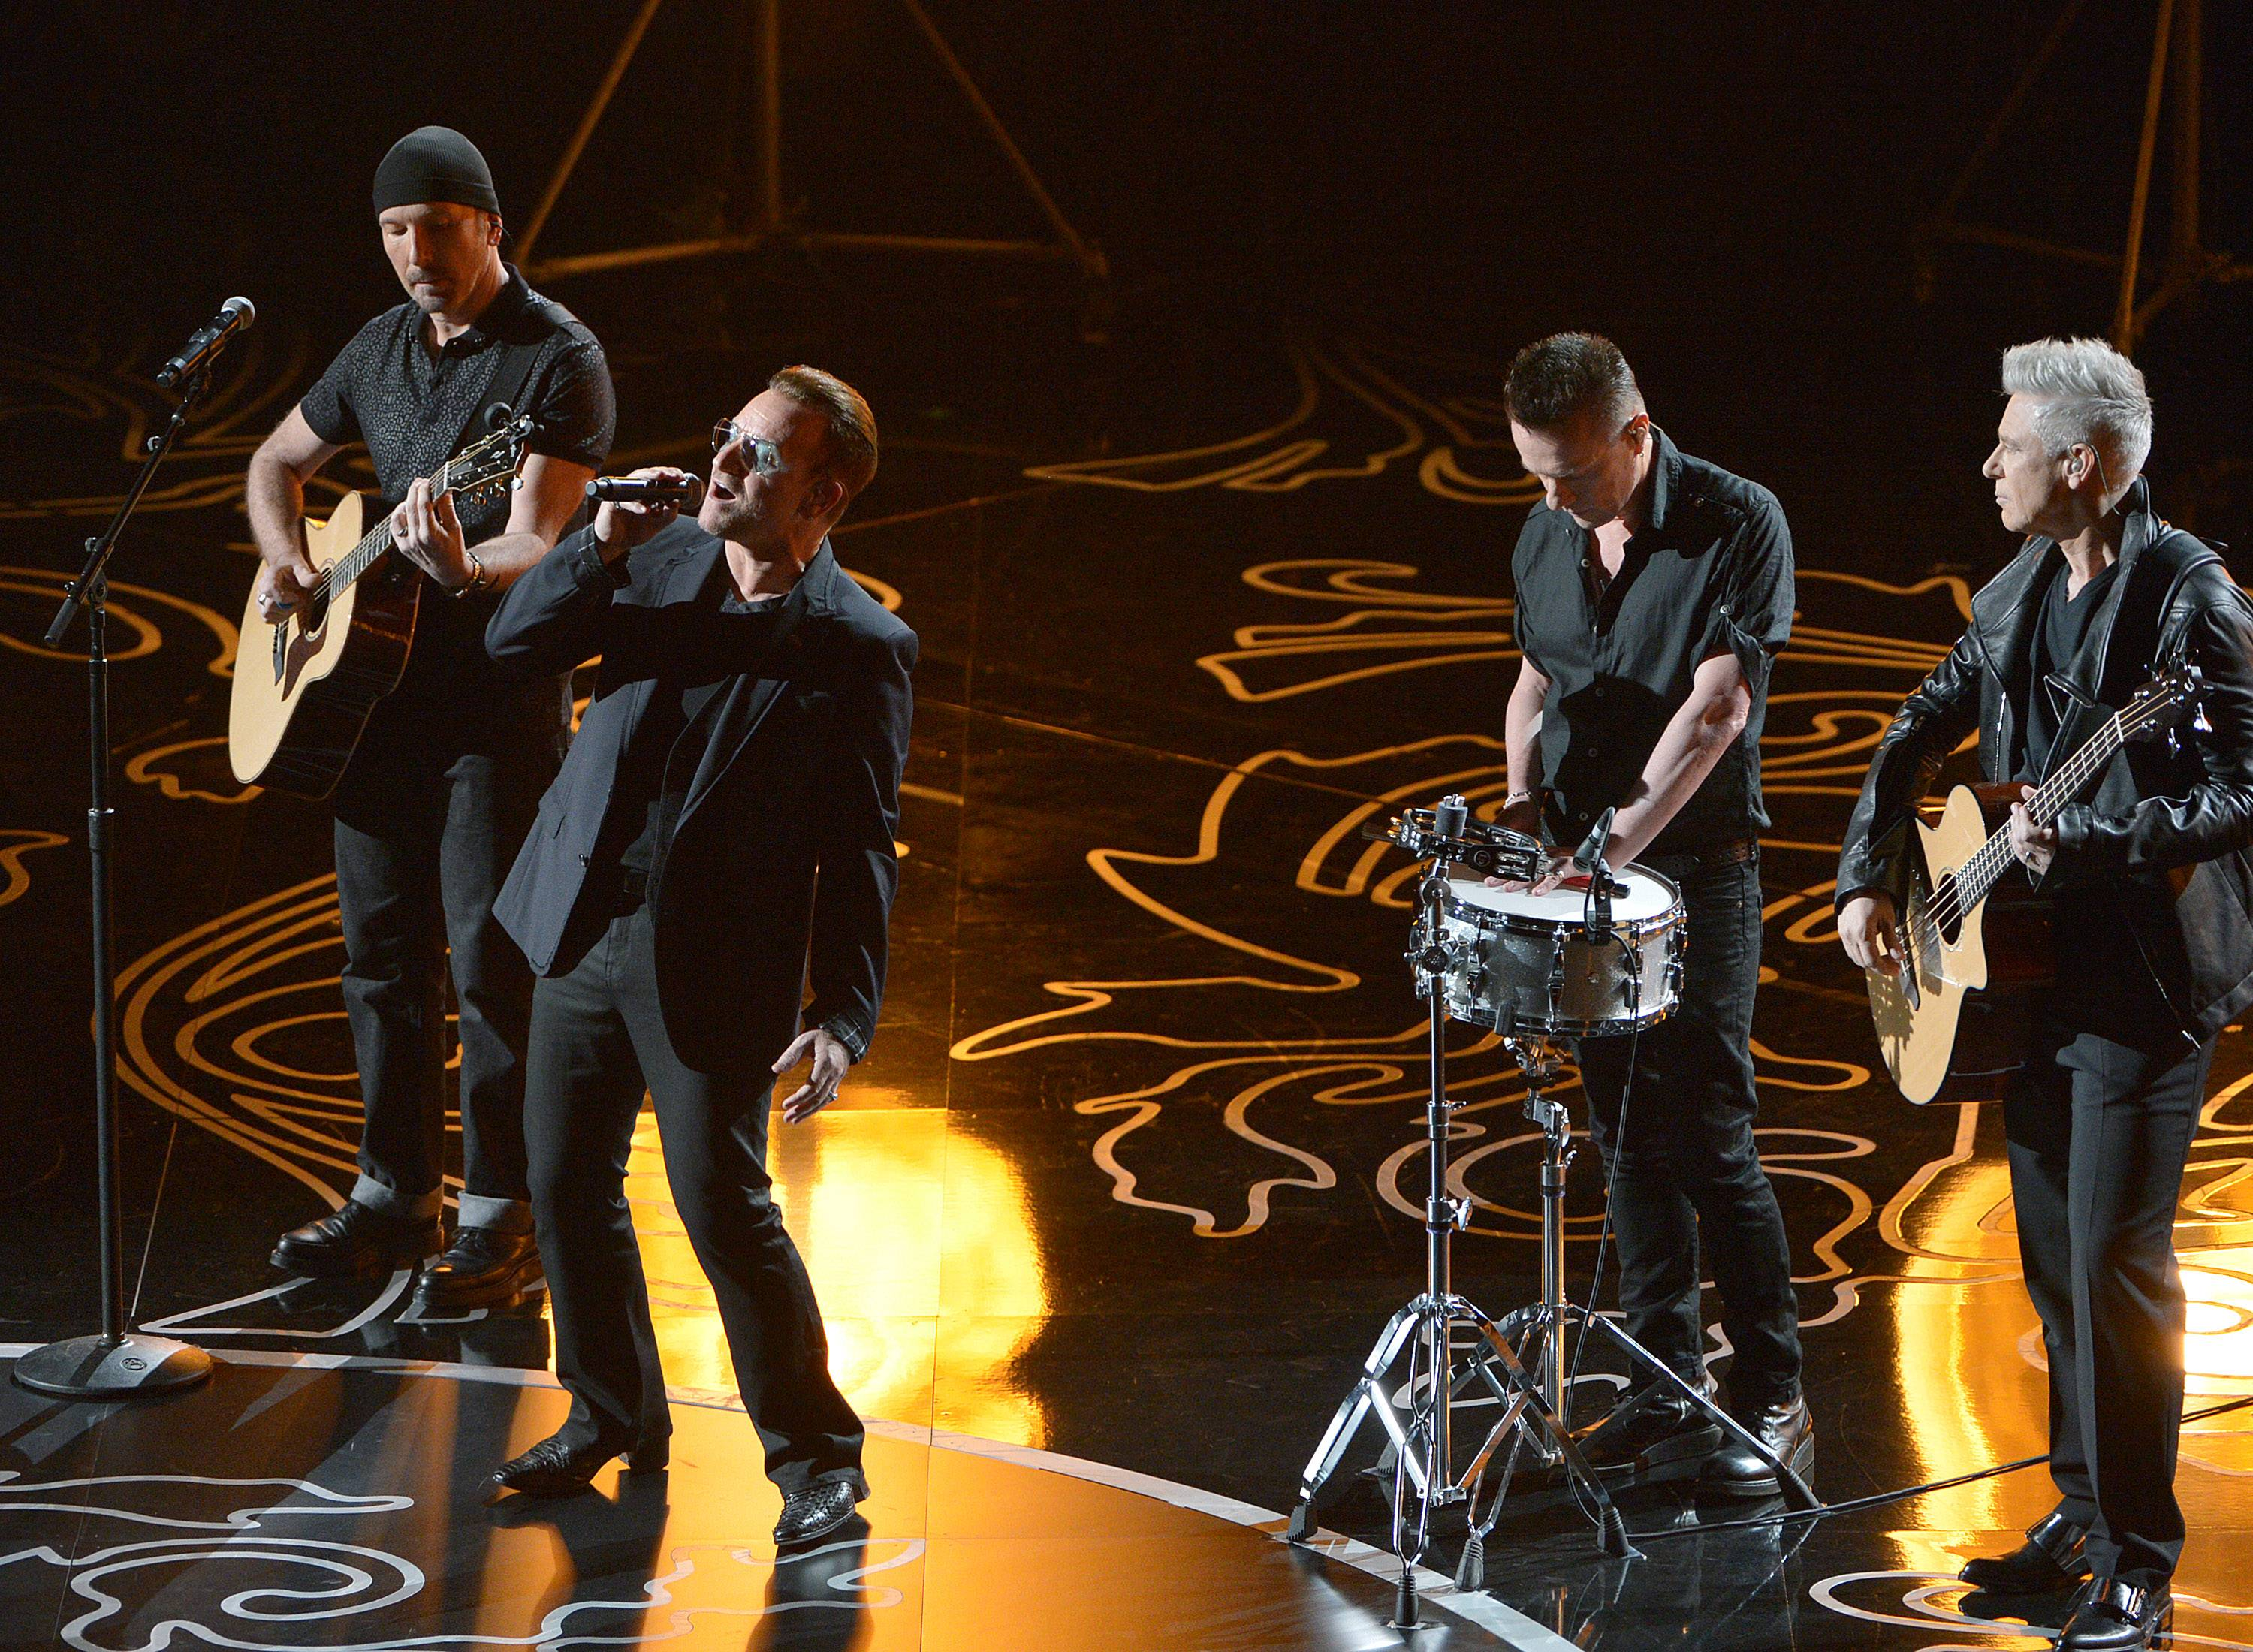 The Edge, from left, Bono, Larry Mullen, Jr. and Adam Clayton of U2 perform on stage during the Oscars.